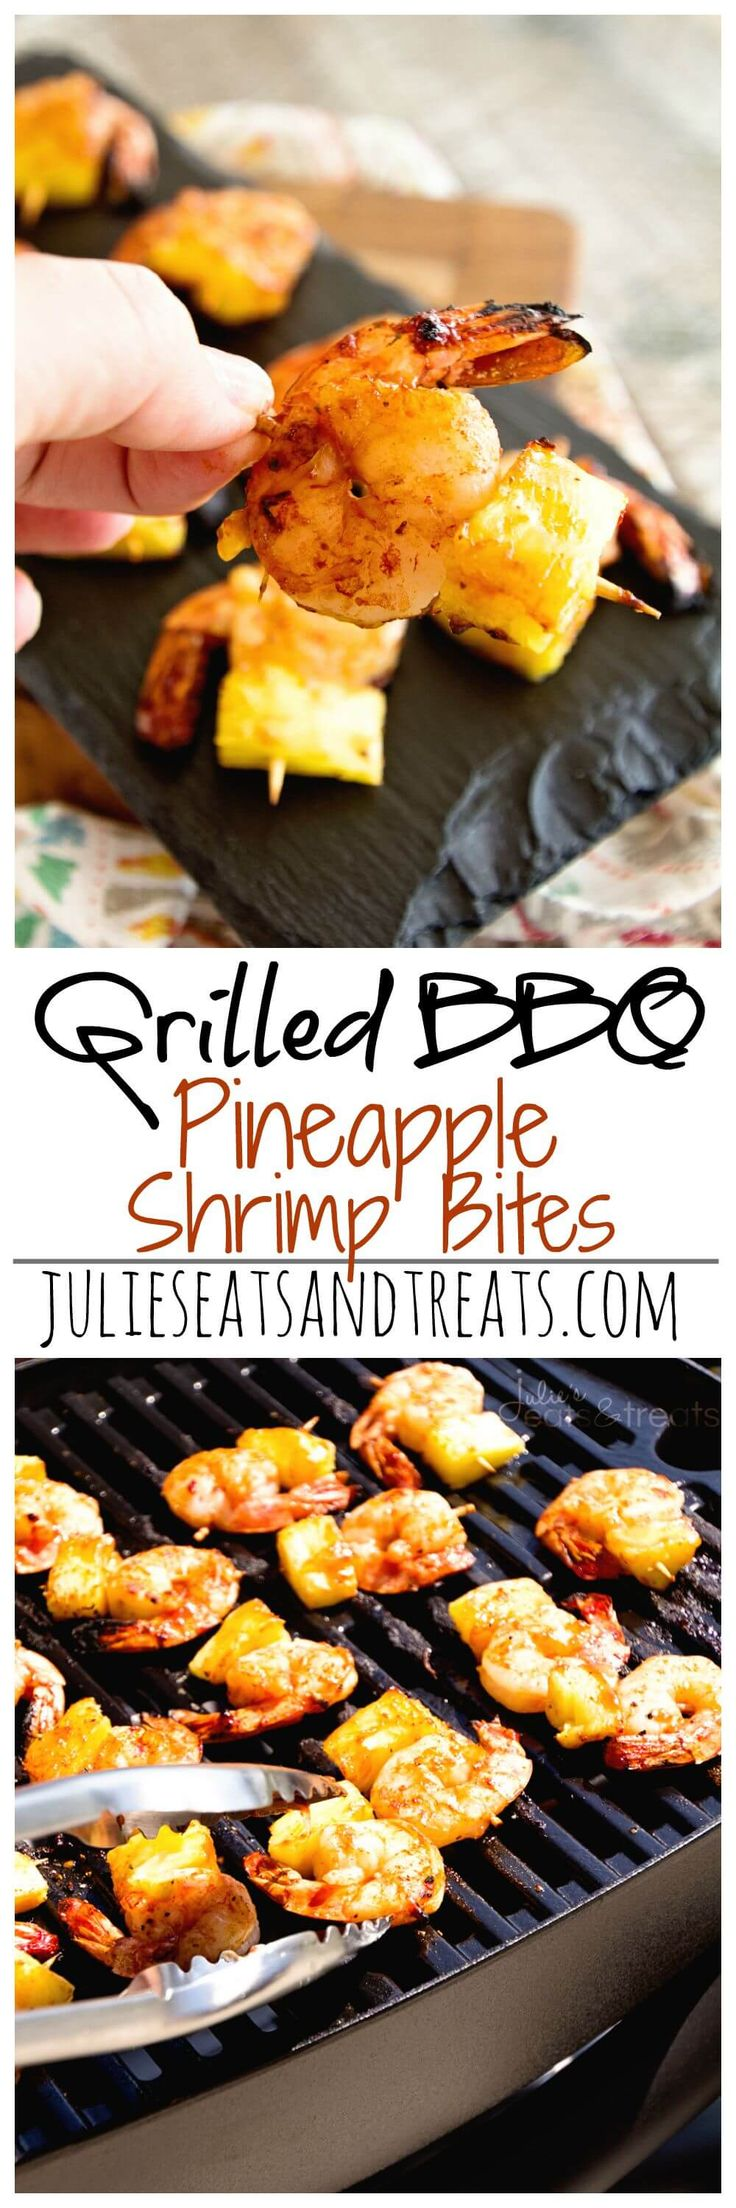 Grilled BBQ Pineapple Shrimp Bites ~ Delicious, Grilled Pineapple and Shrimp Bites Seasoned with BBQ Seasoning and Sauce then Grilled to Perfection! ~ http://www.julieseatsandtreats.com